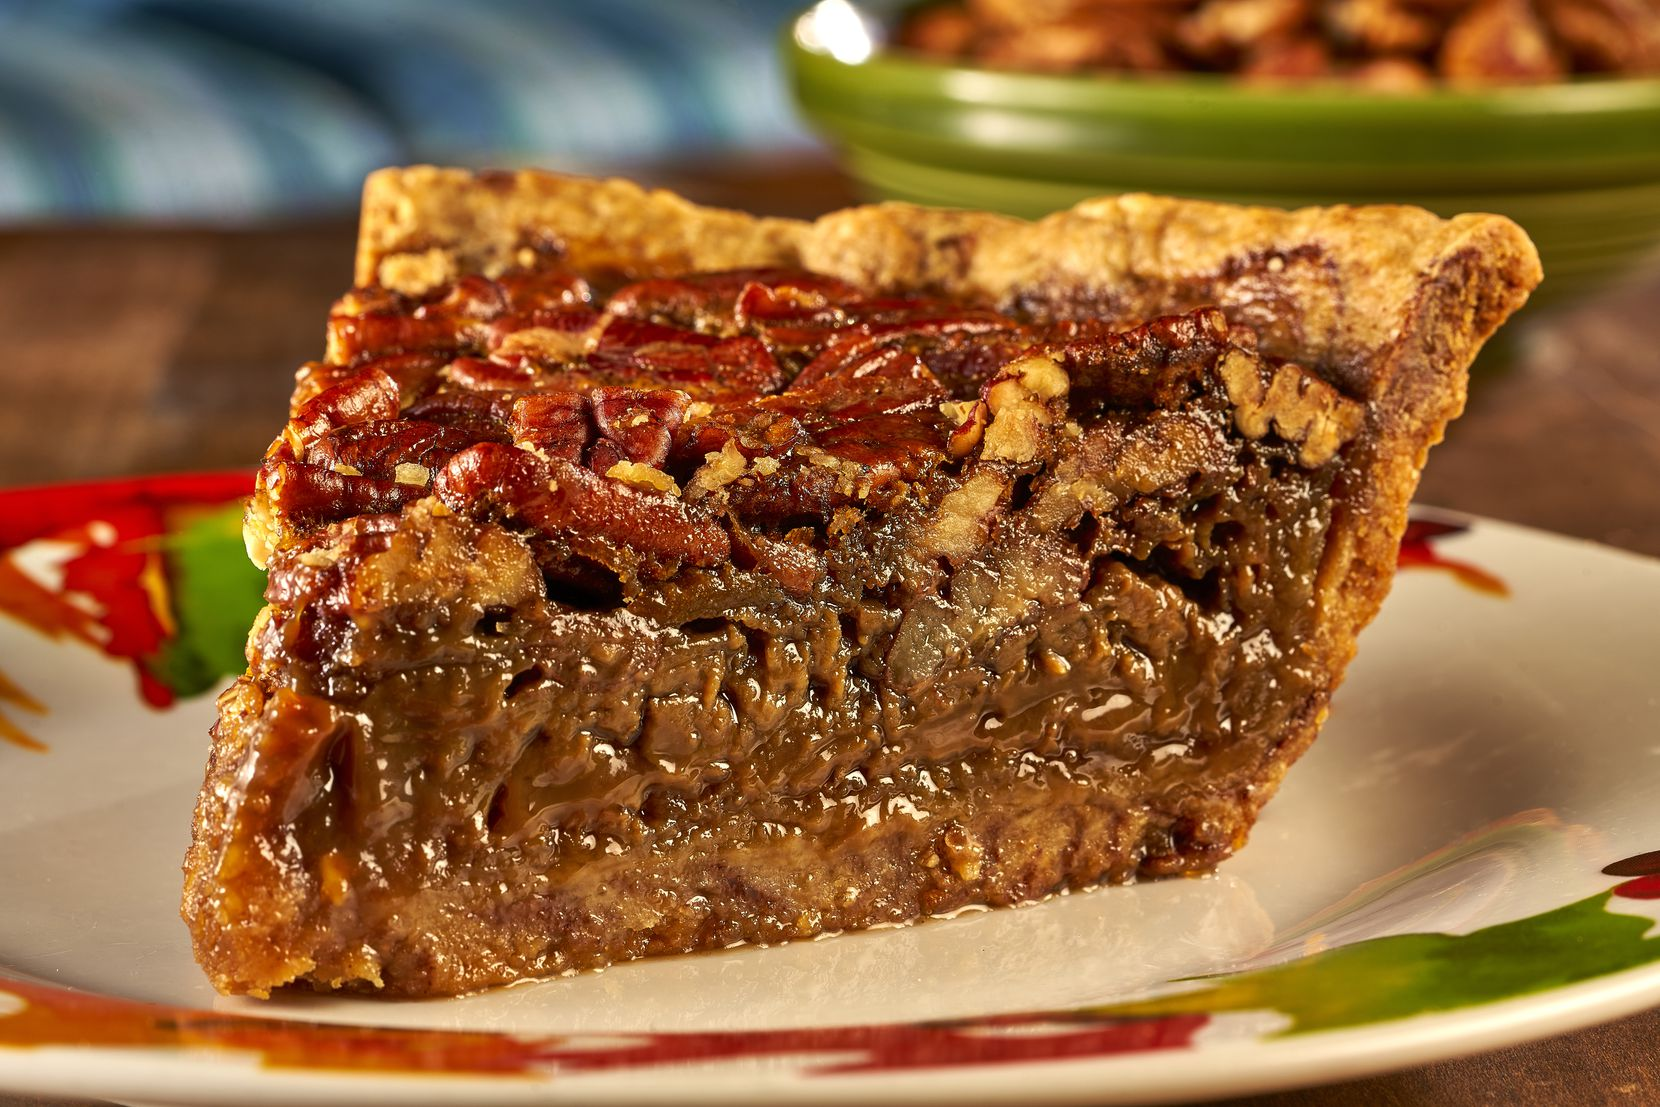 At the Haywire and The Ranch at Las Colinas, guests can order the special Route 66 pecan pie (made with a cinnamon bun crust) a la carte for $50, or for $40 as an addition to the restaurants' Thanksgiving dinner curbside kit.